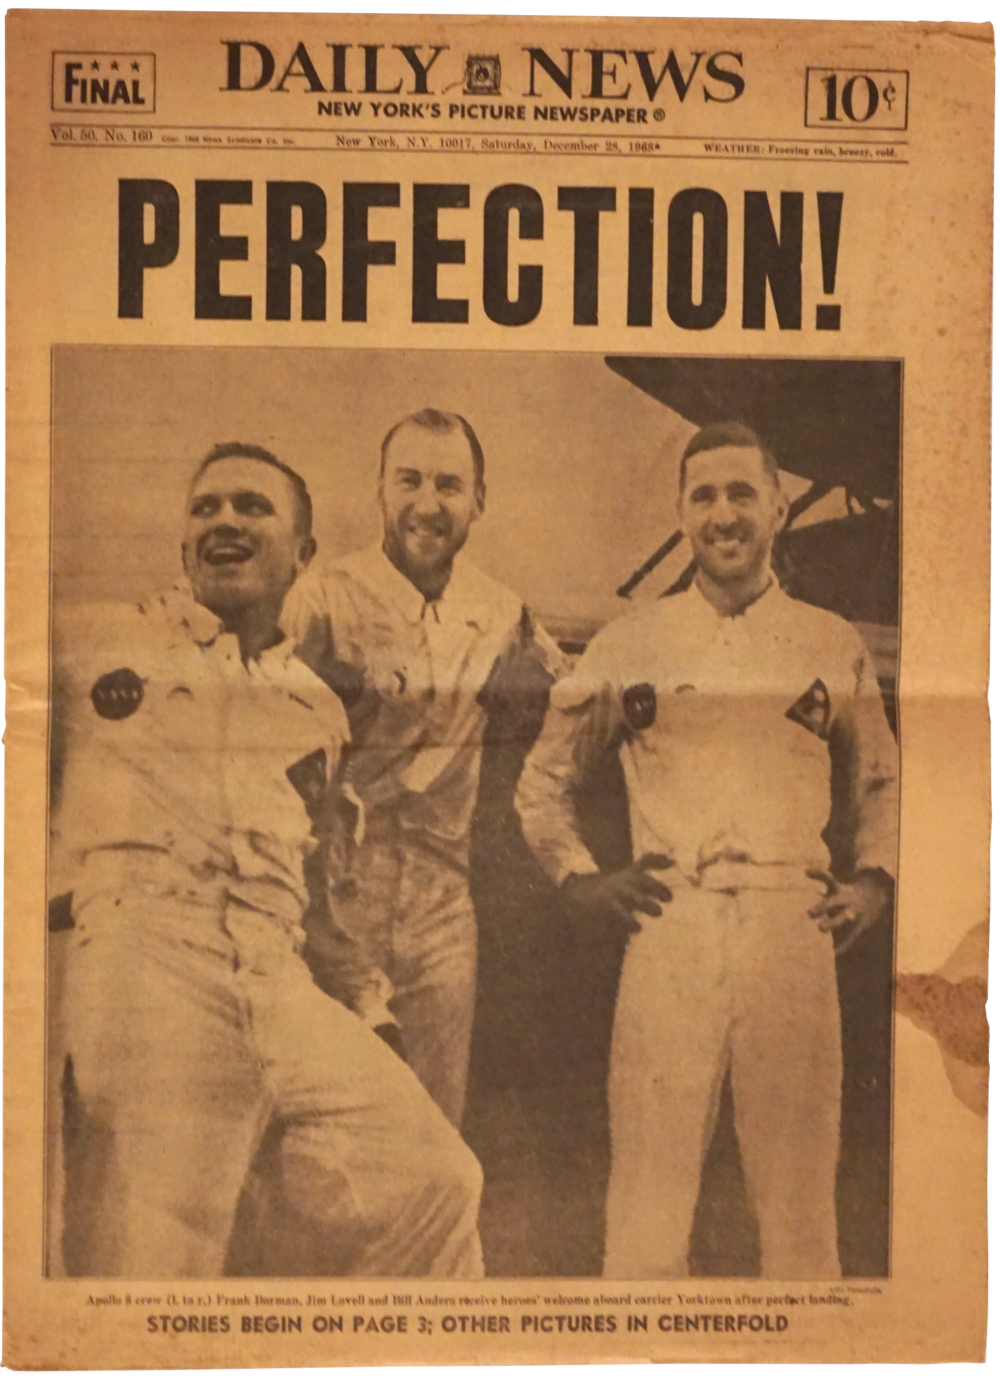 ERM-1968-NEWSPAPER-DAILY_NEWS-122868.png